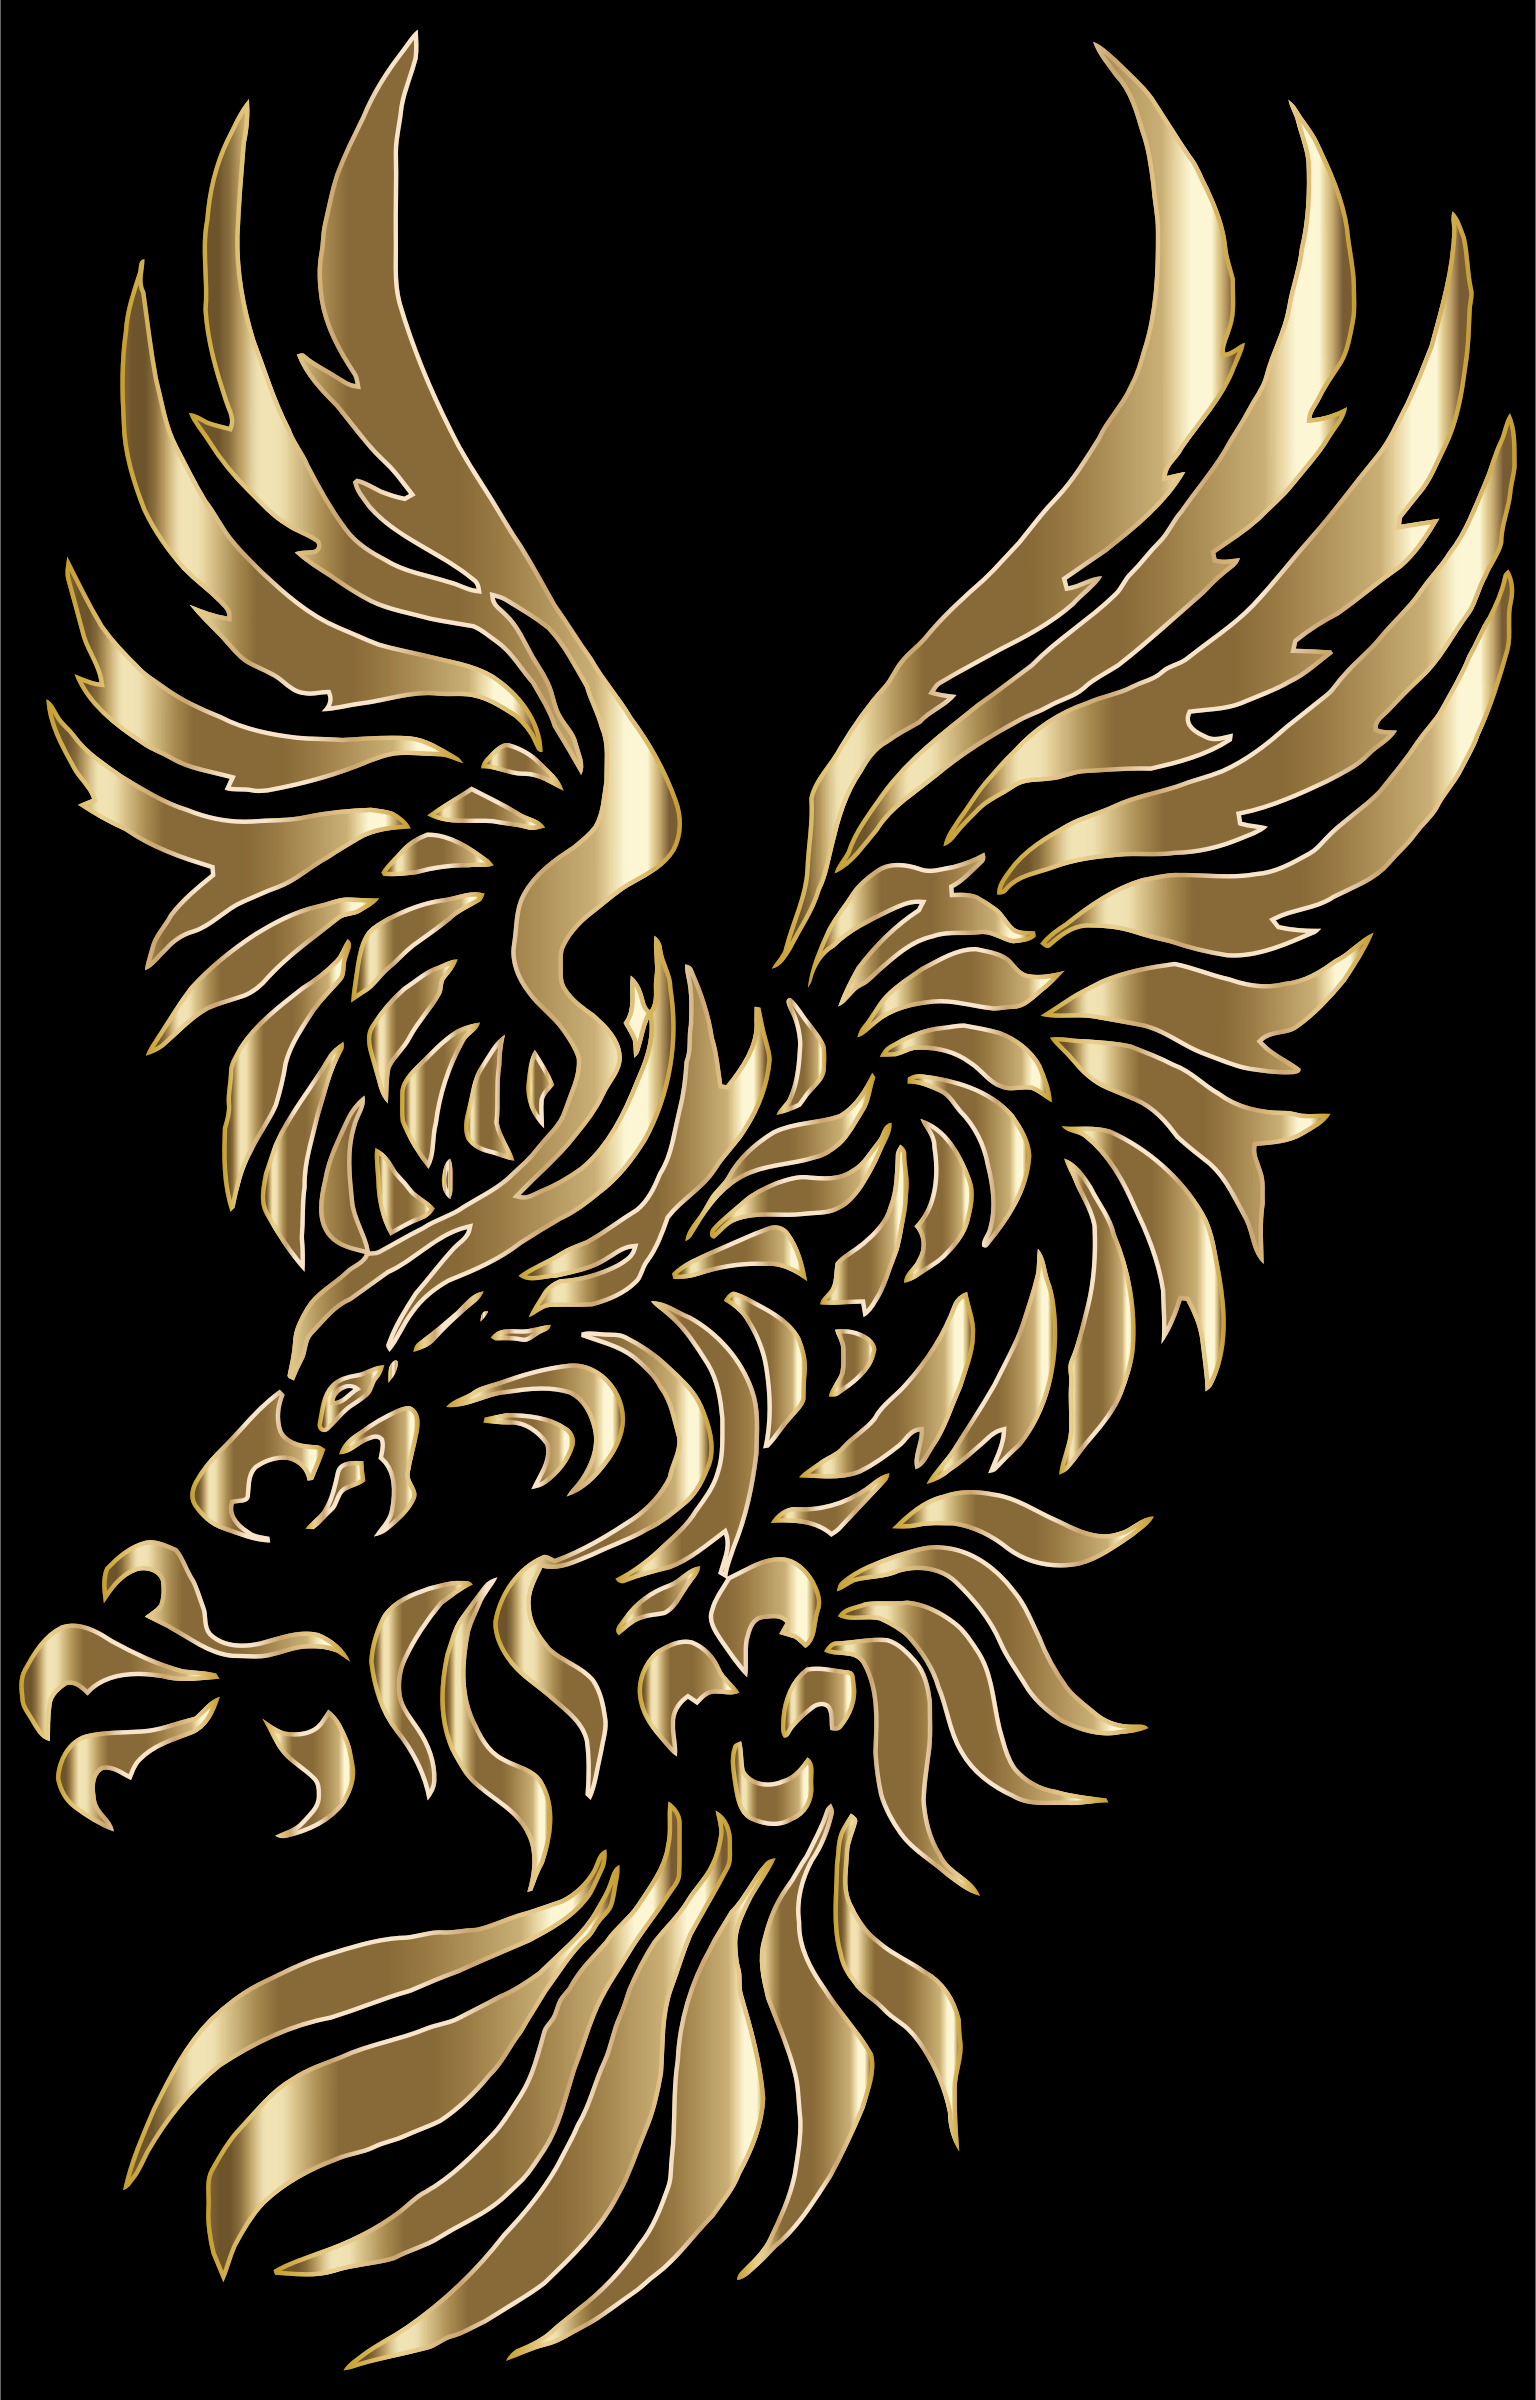 Clipart - Chromatic Tribal Eagle 2 4